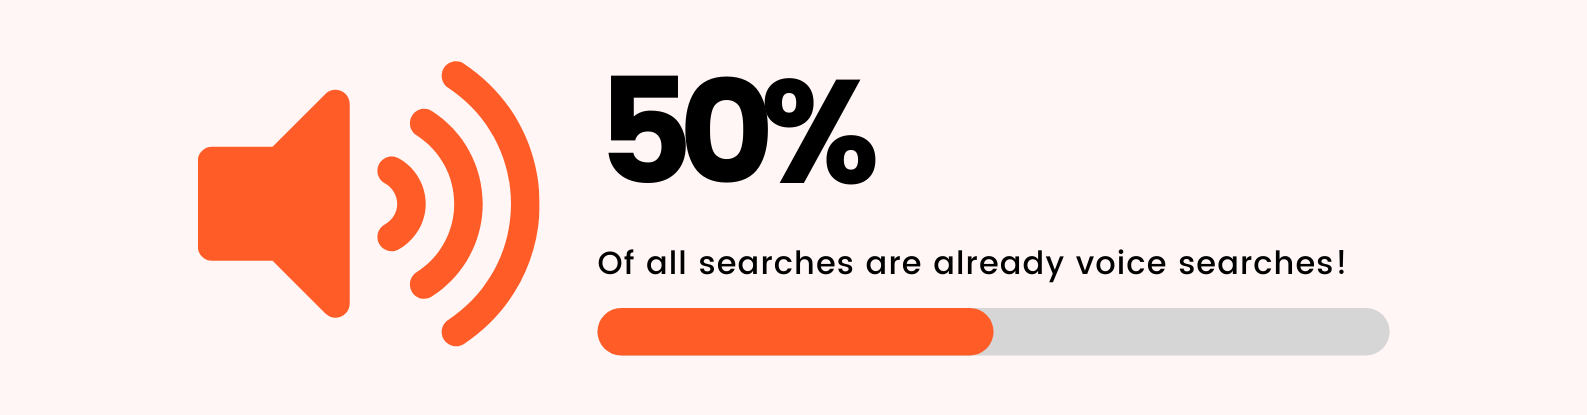 voice search 50% of all searches